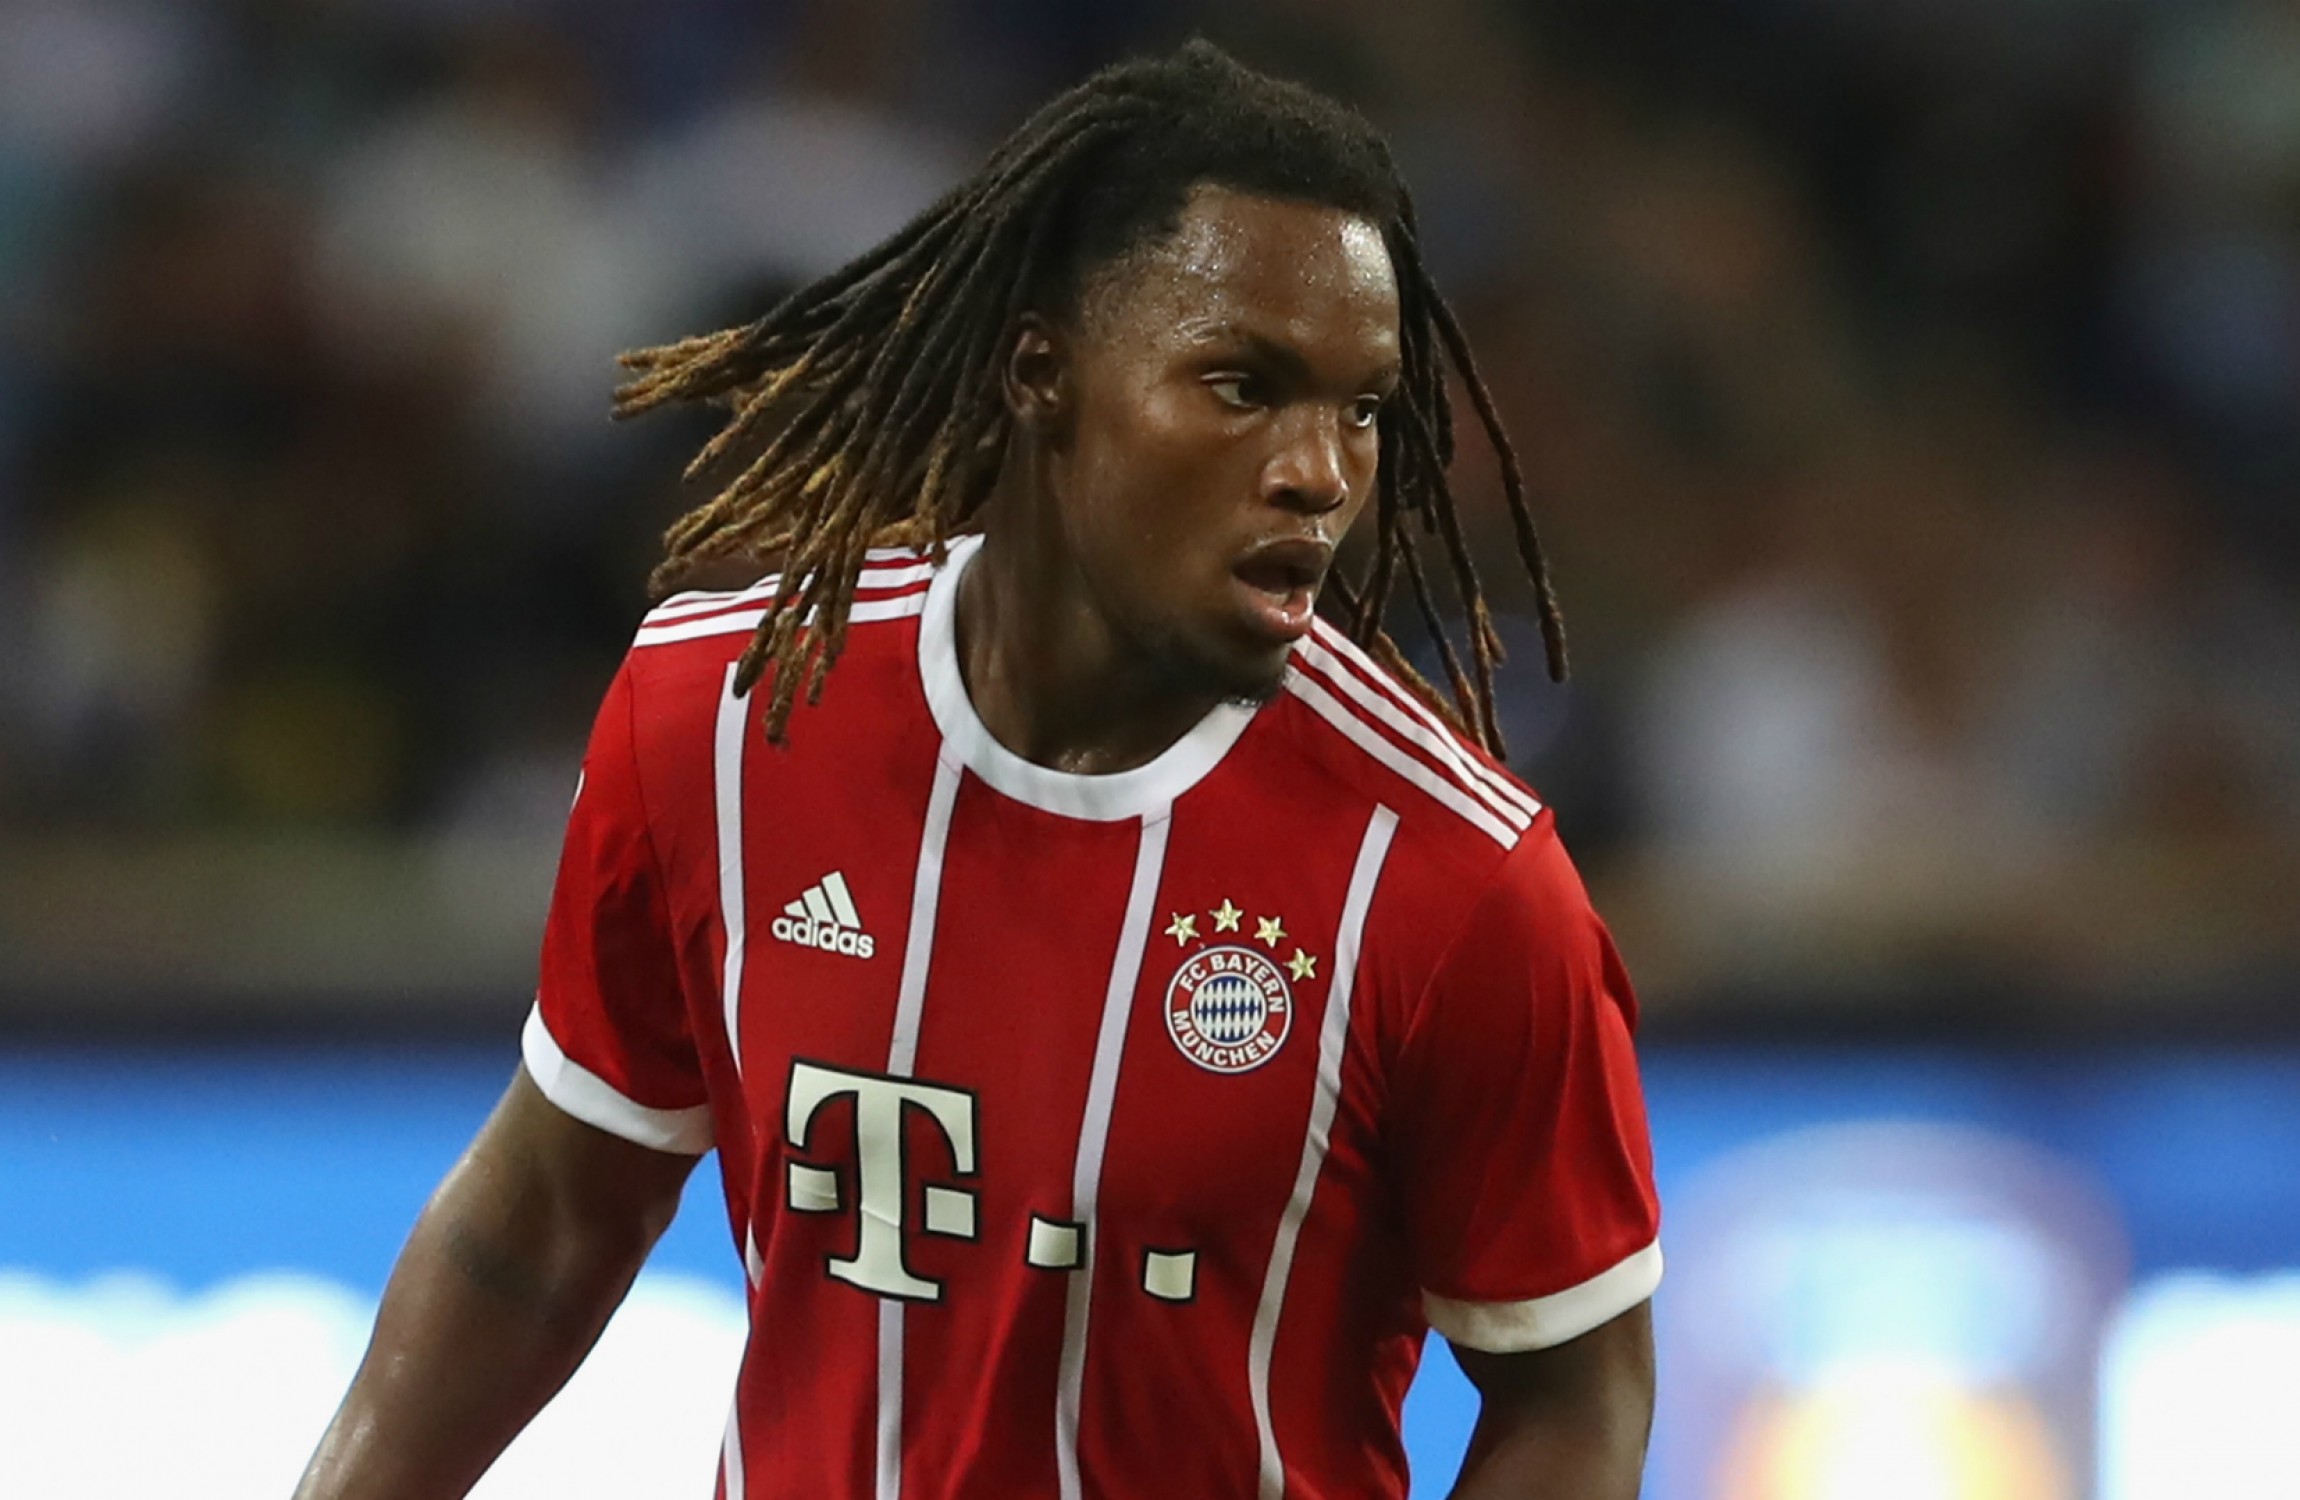 Swansea close in on stunning loan signing of Renato Sanches from